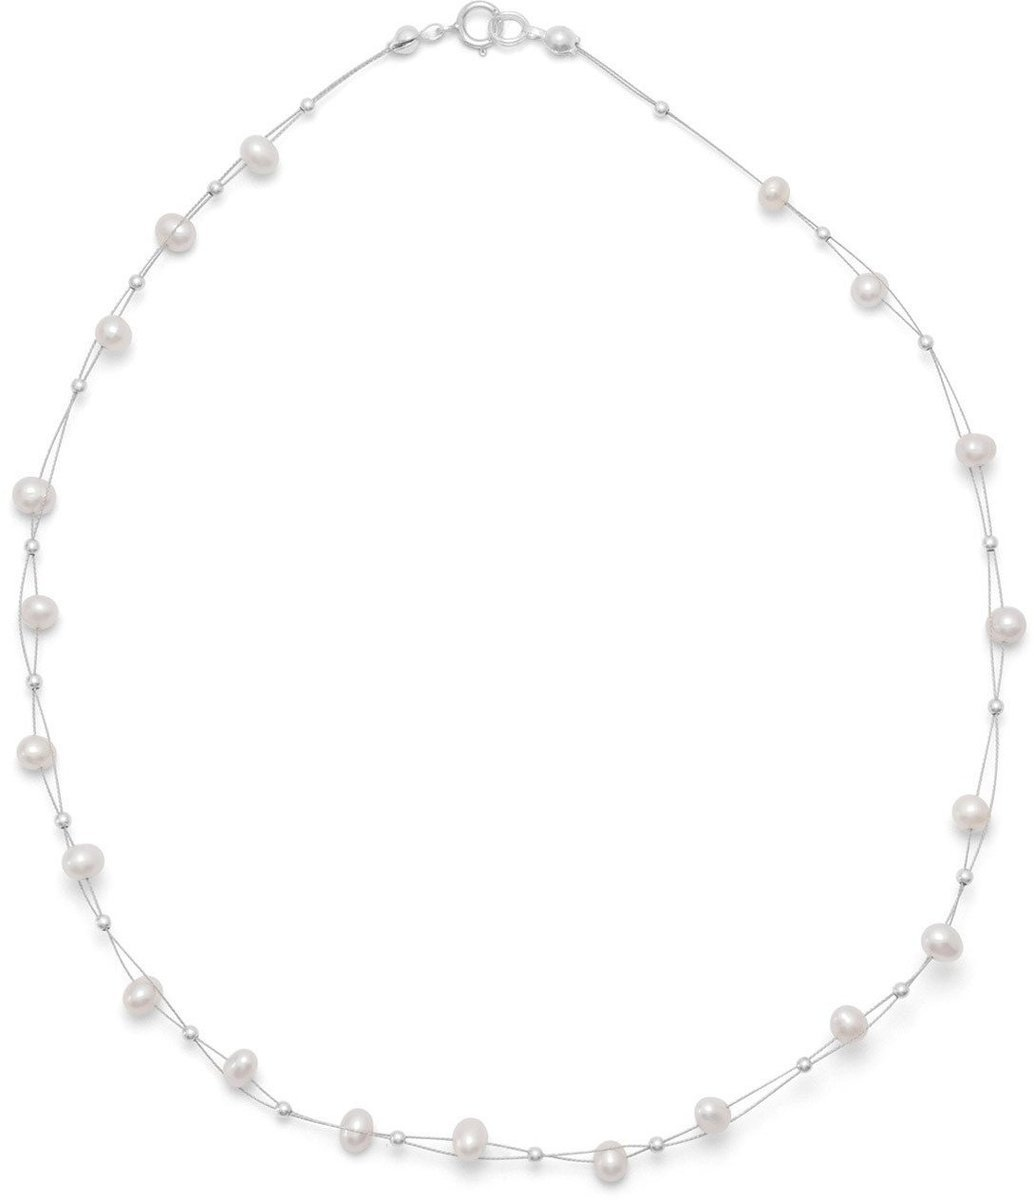 "16"" Double Strand Cultured Freshwater Pearl Necklace 925 Sterling Silver"